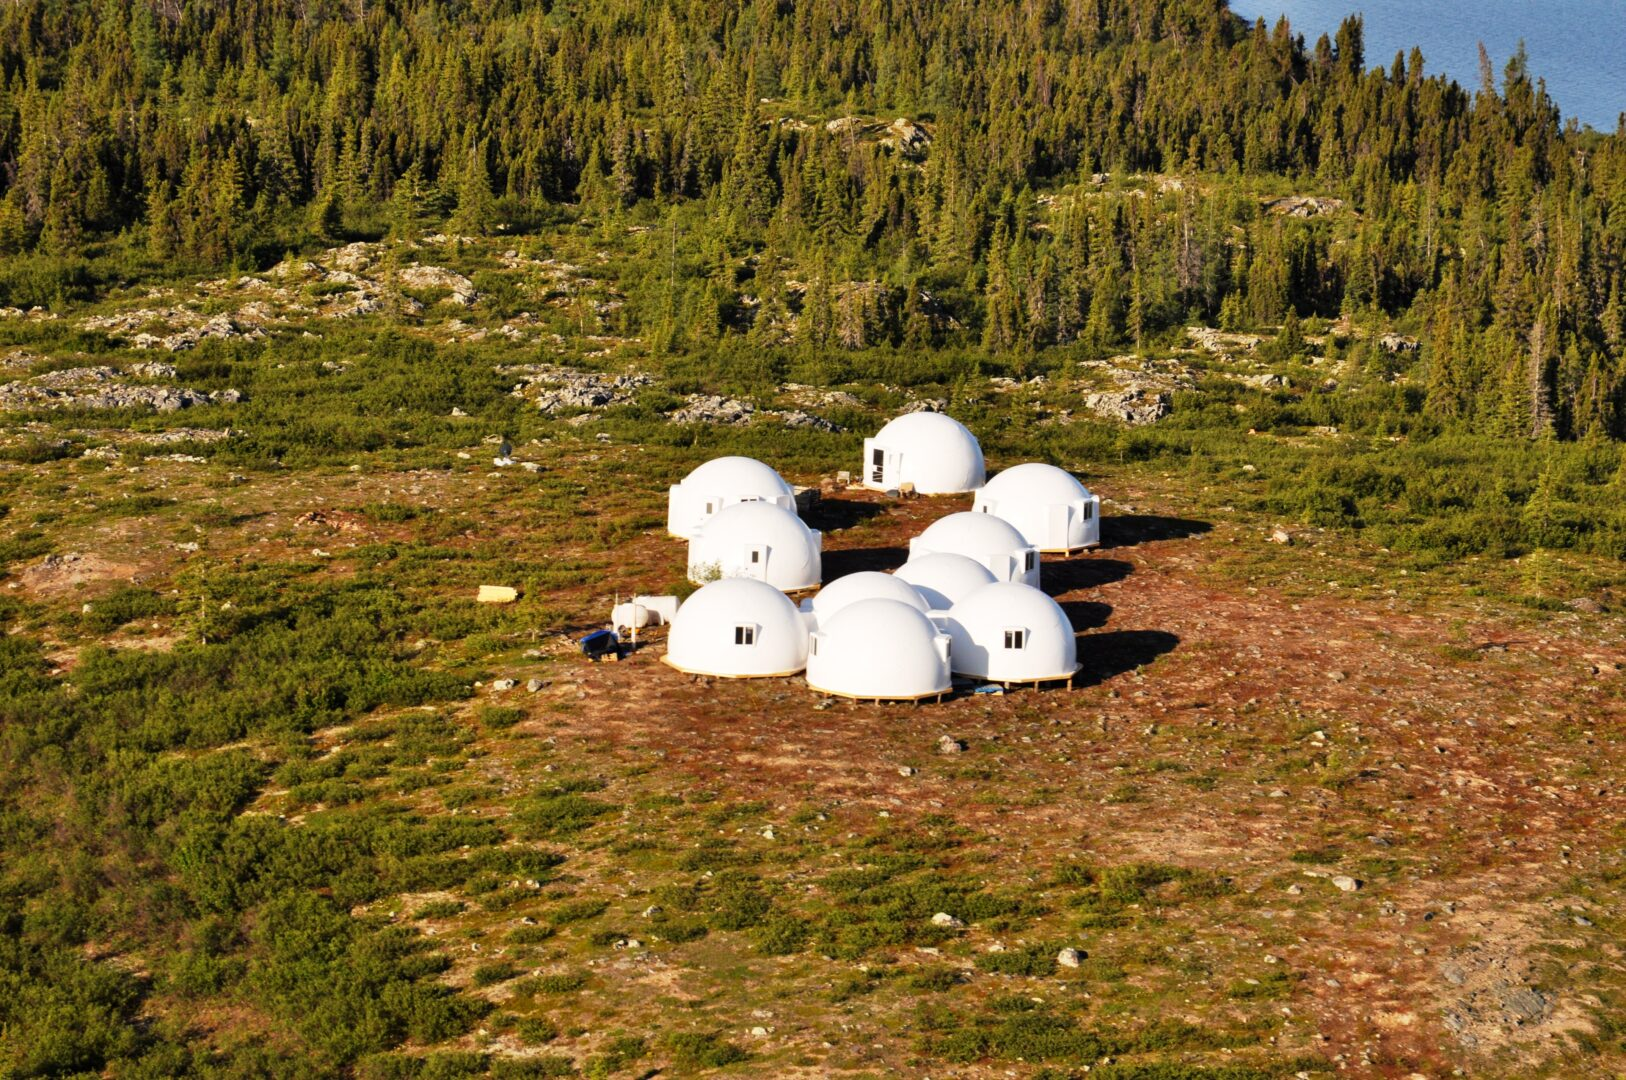 Group of safety shelters from InterShelter Inc. for disaster relief